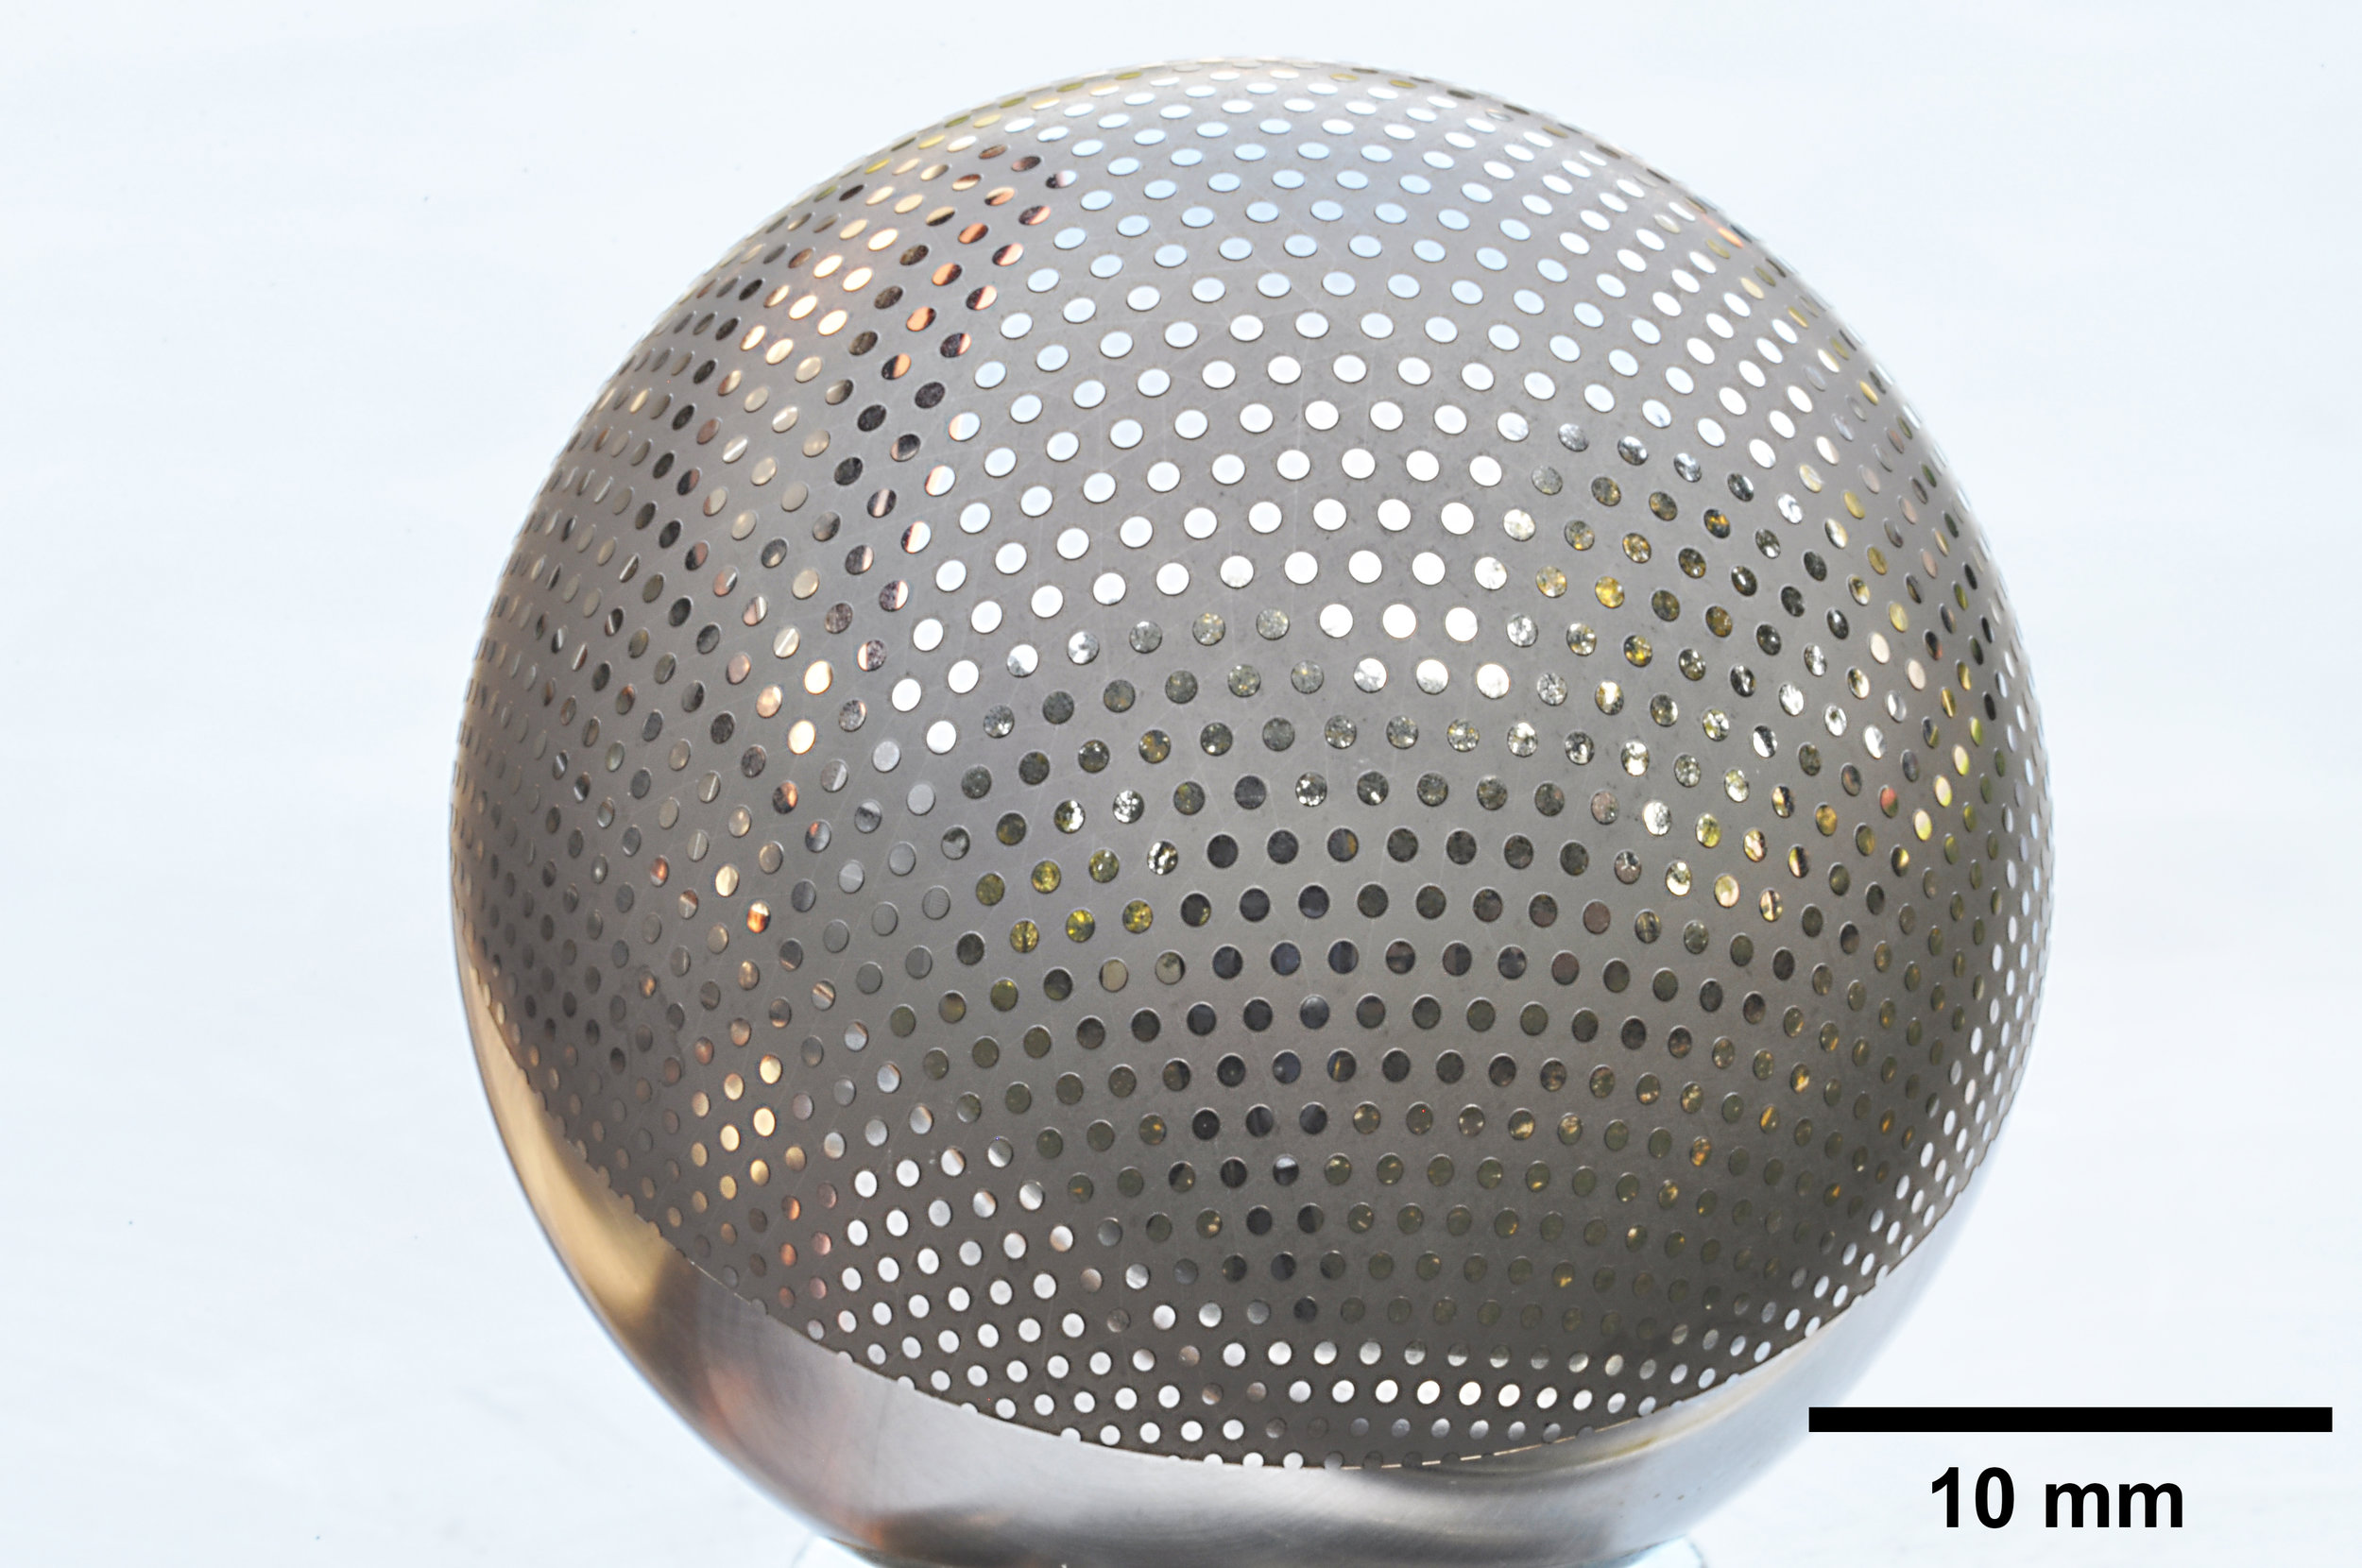 A 30 mm diameter steel sphere machined to a depth of 20 μm, leaving a pattern of unmachined disks.